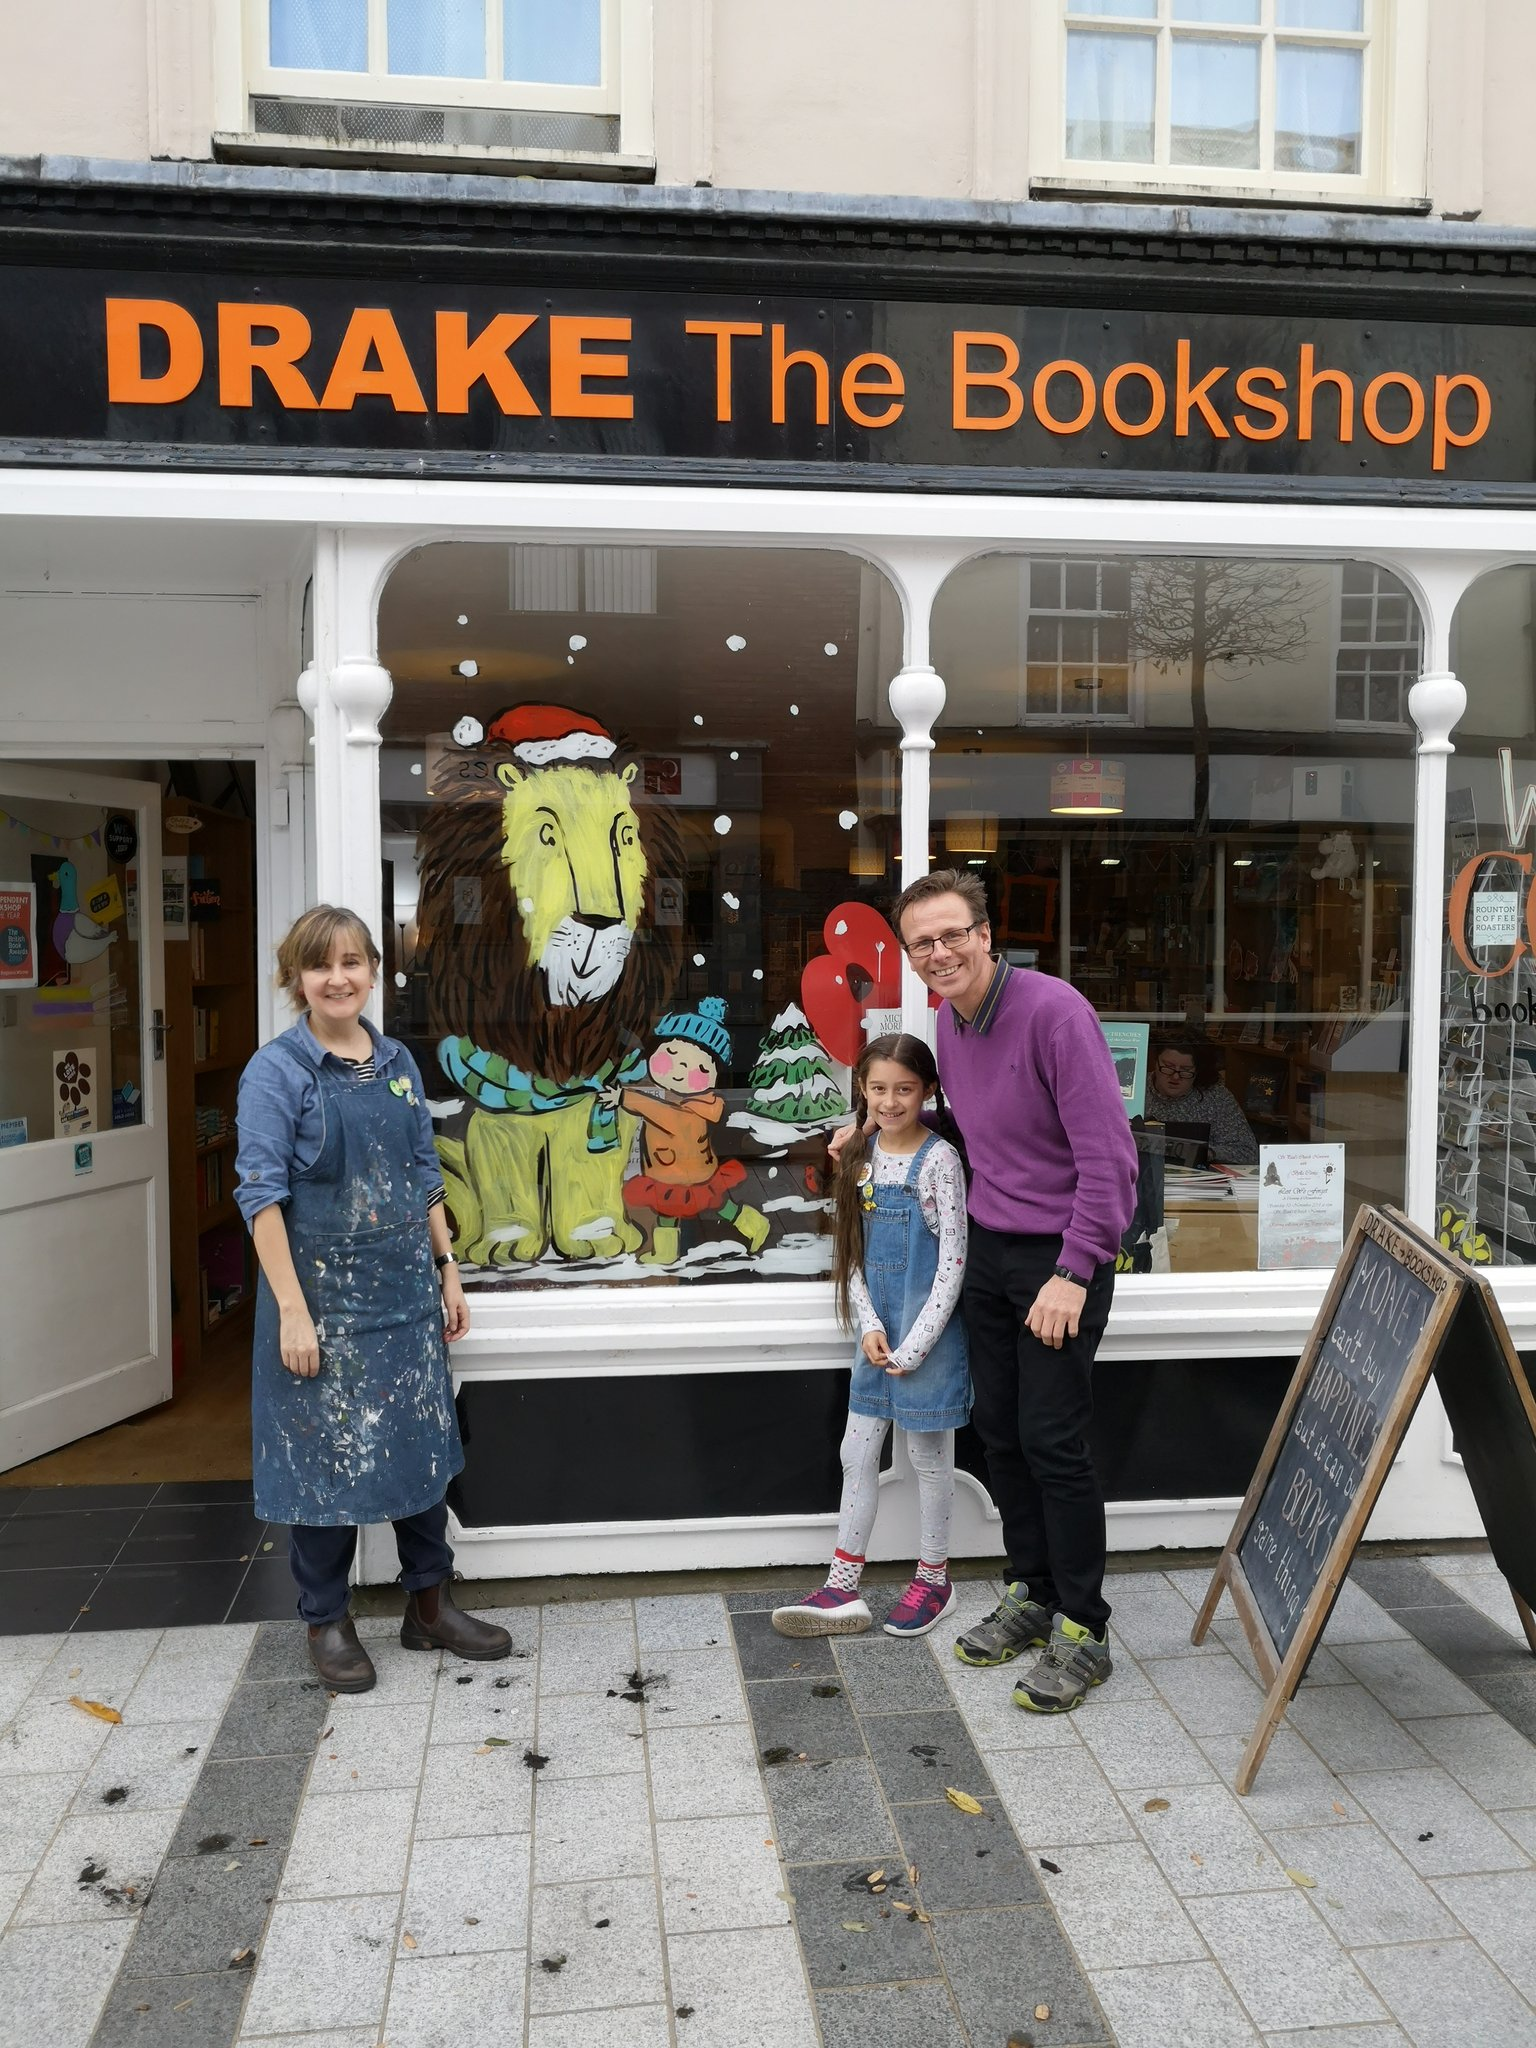 DRAKE the Bookshop – Day 2 of the Advent